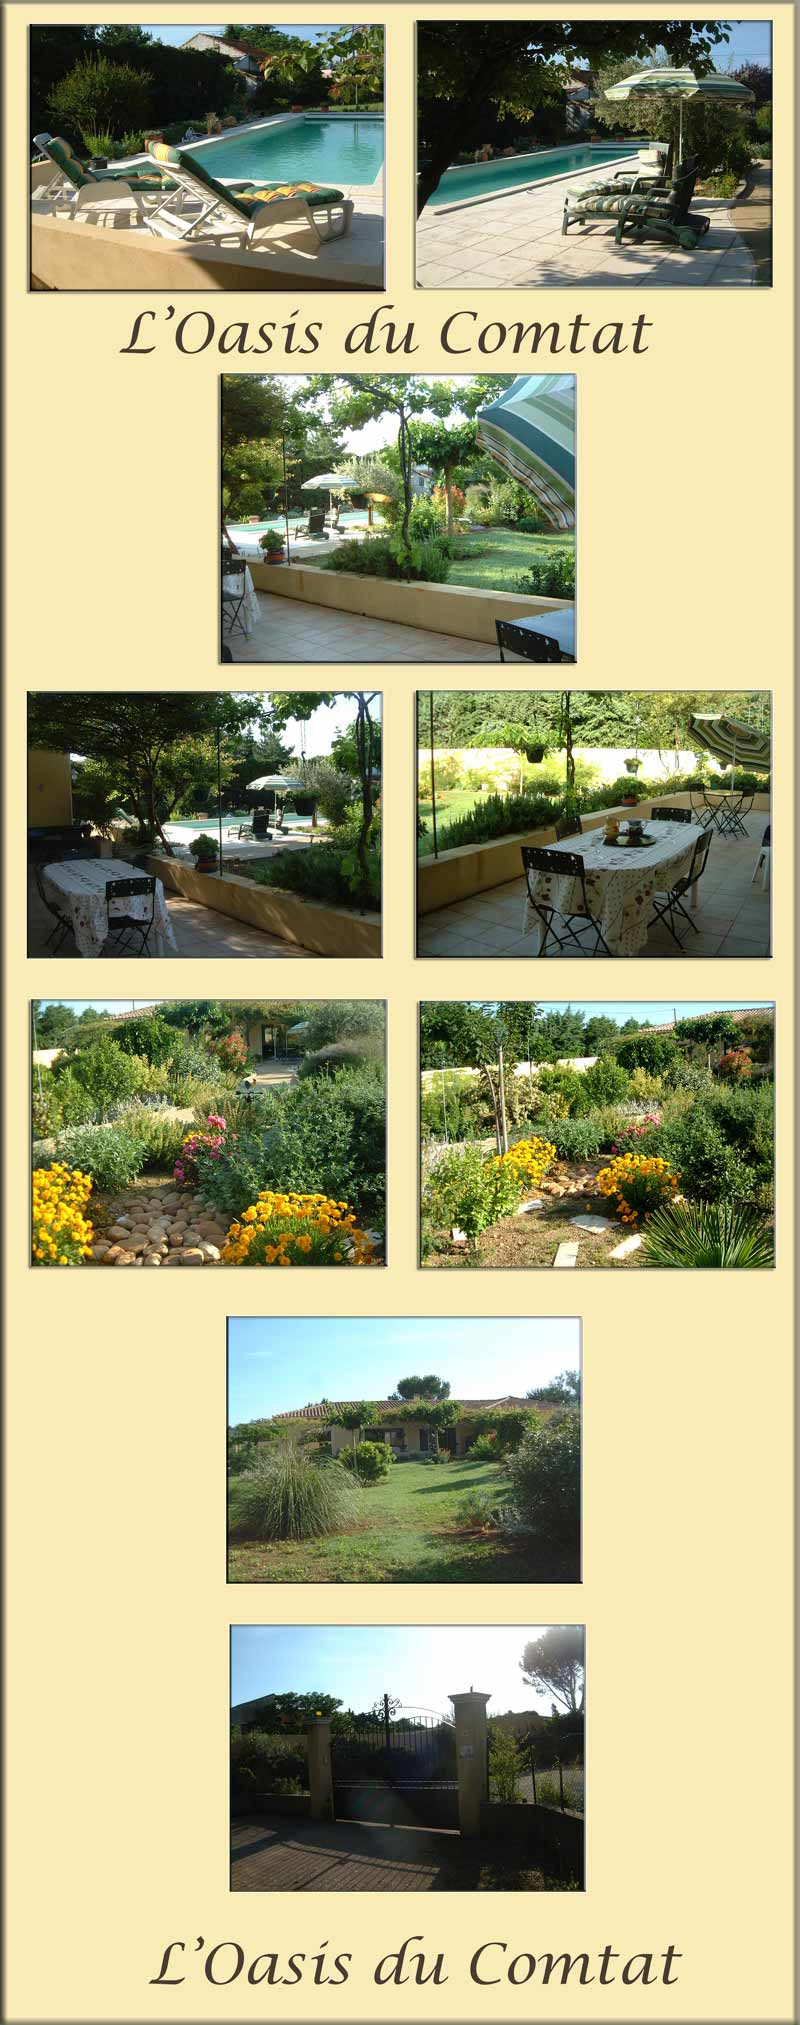 Luxury France Villa with Large Pool and Landscaped Garden. Private Fenced and Gated Property.